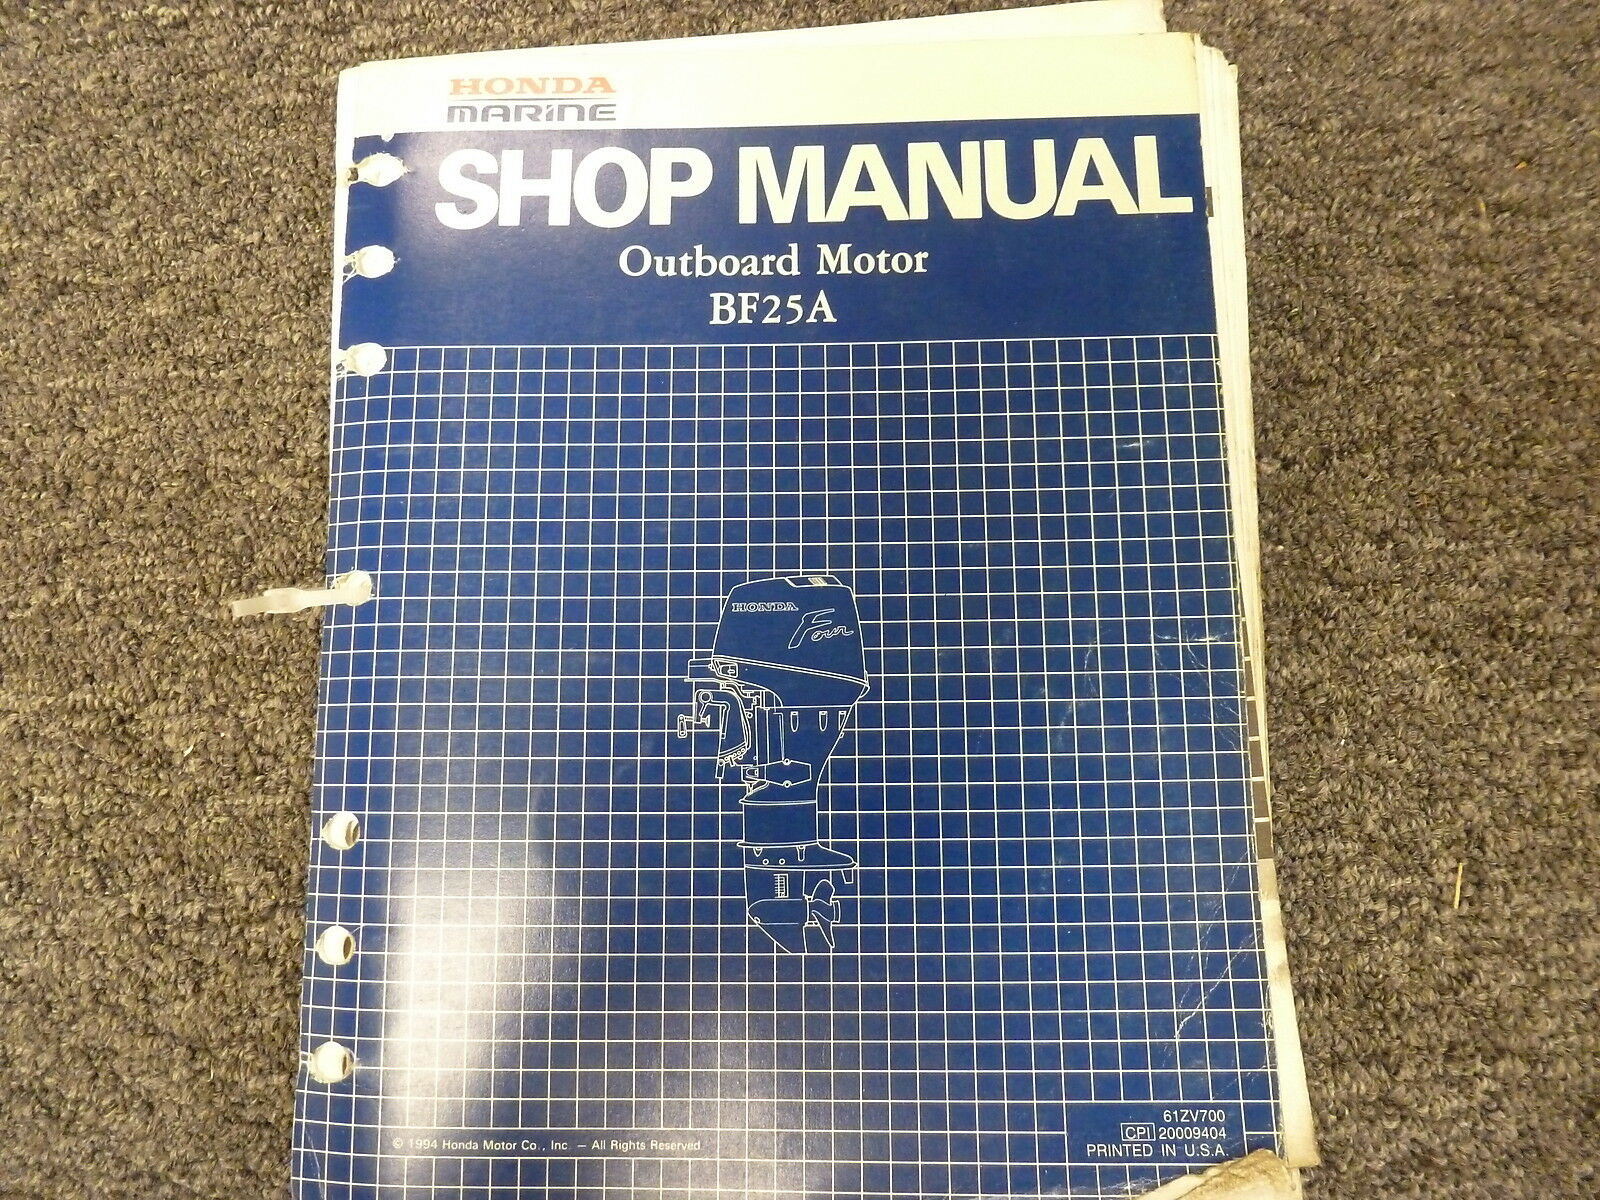 Honda Marine BF25A Outboard Motor Shop Service Repair Manual Issued 1994 1  of 1Only 1 available ...